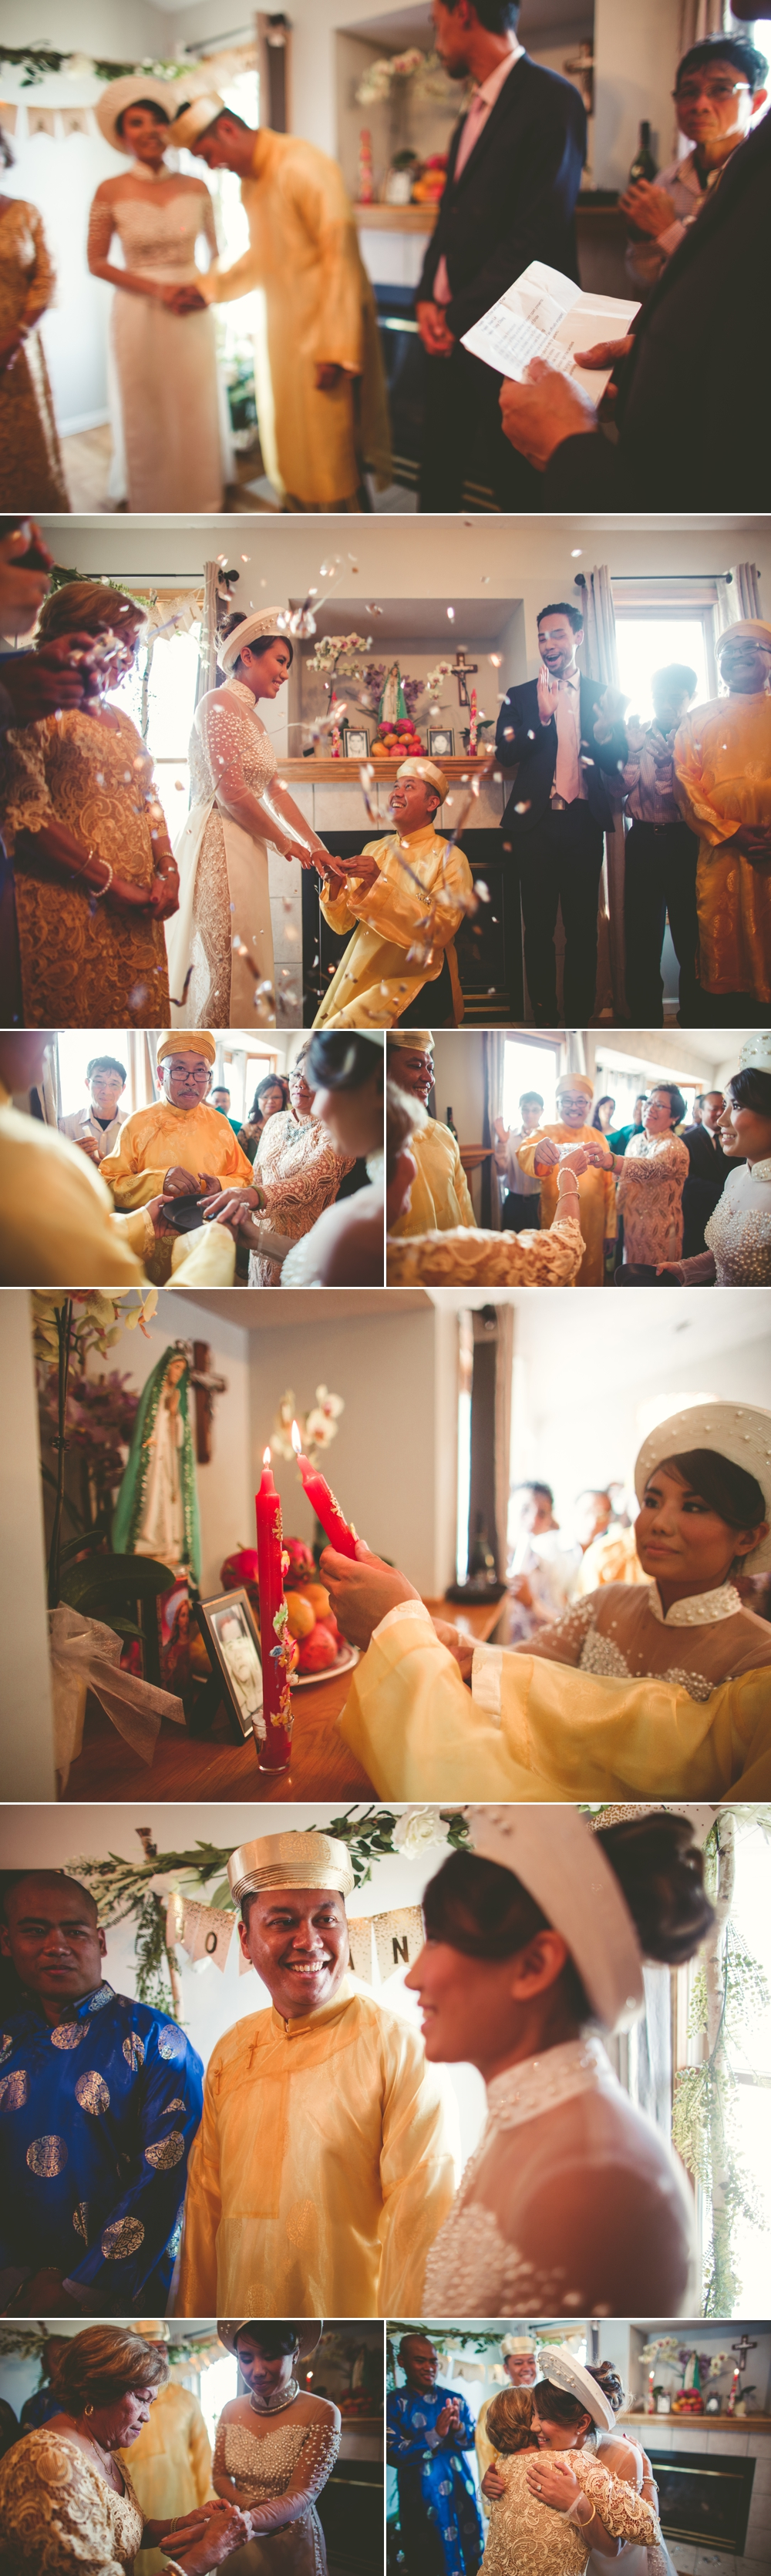 jason_domingues_photography_vietnamese_tea_ceremony_best_kansas_city_wedding_photographer_lincoln_2